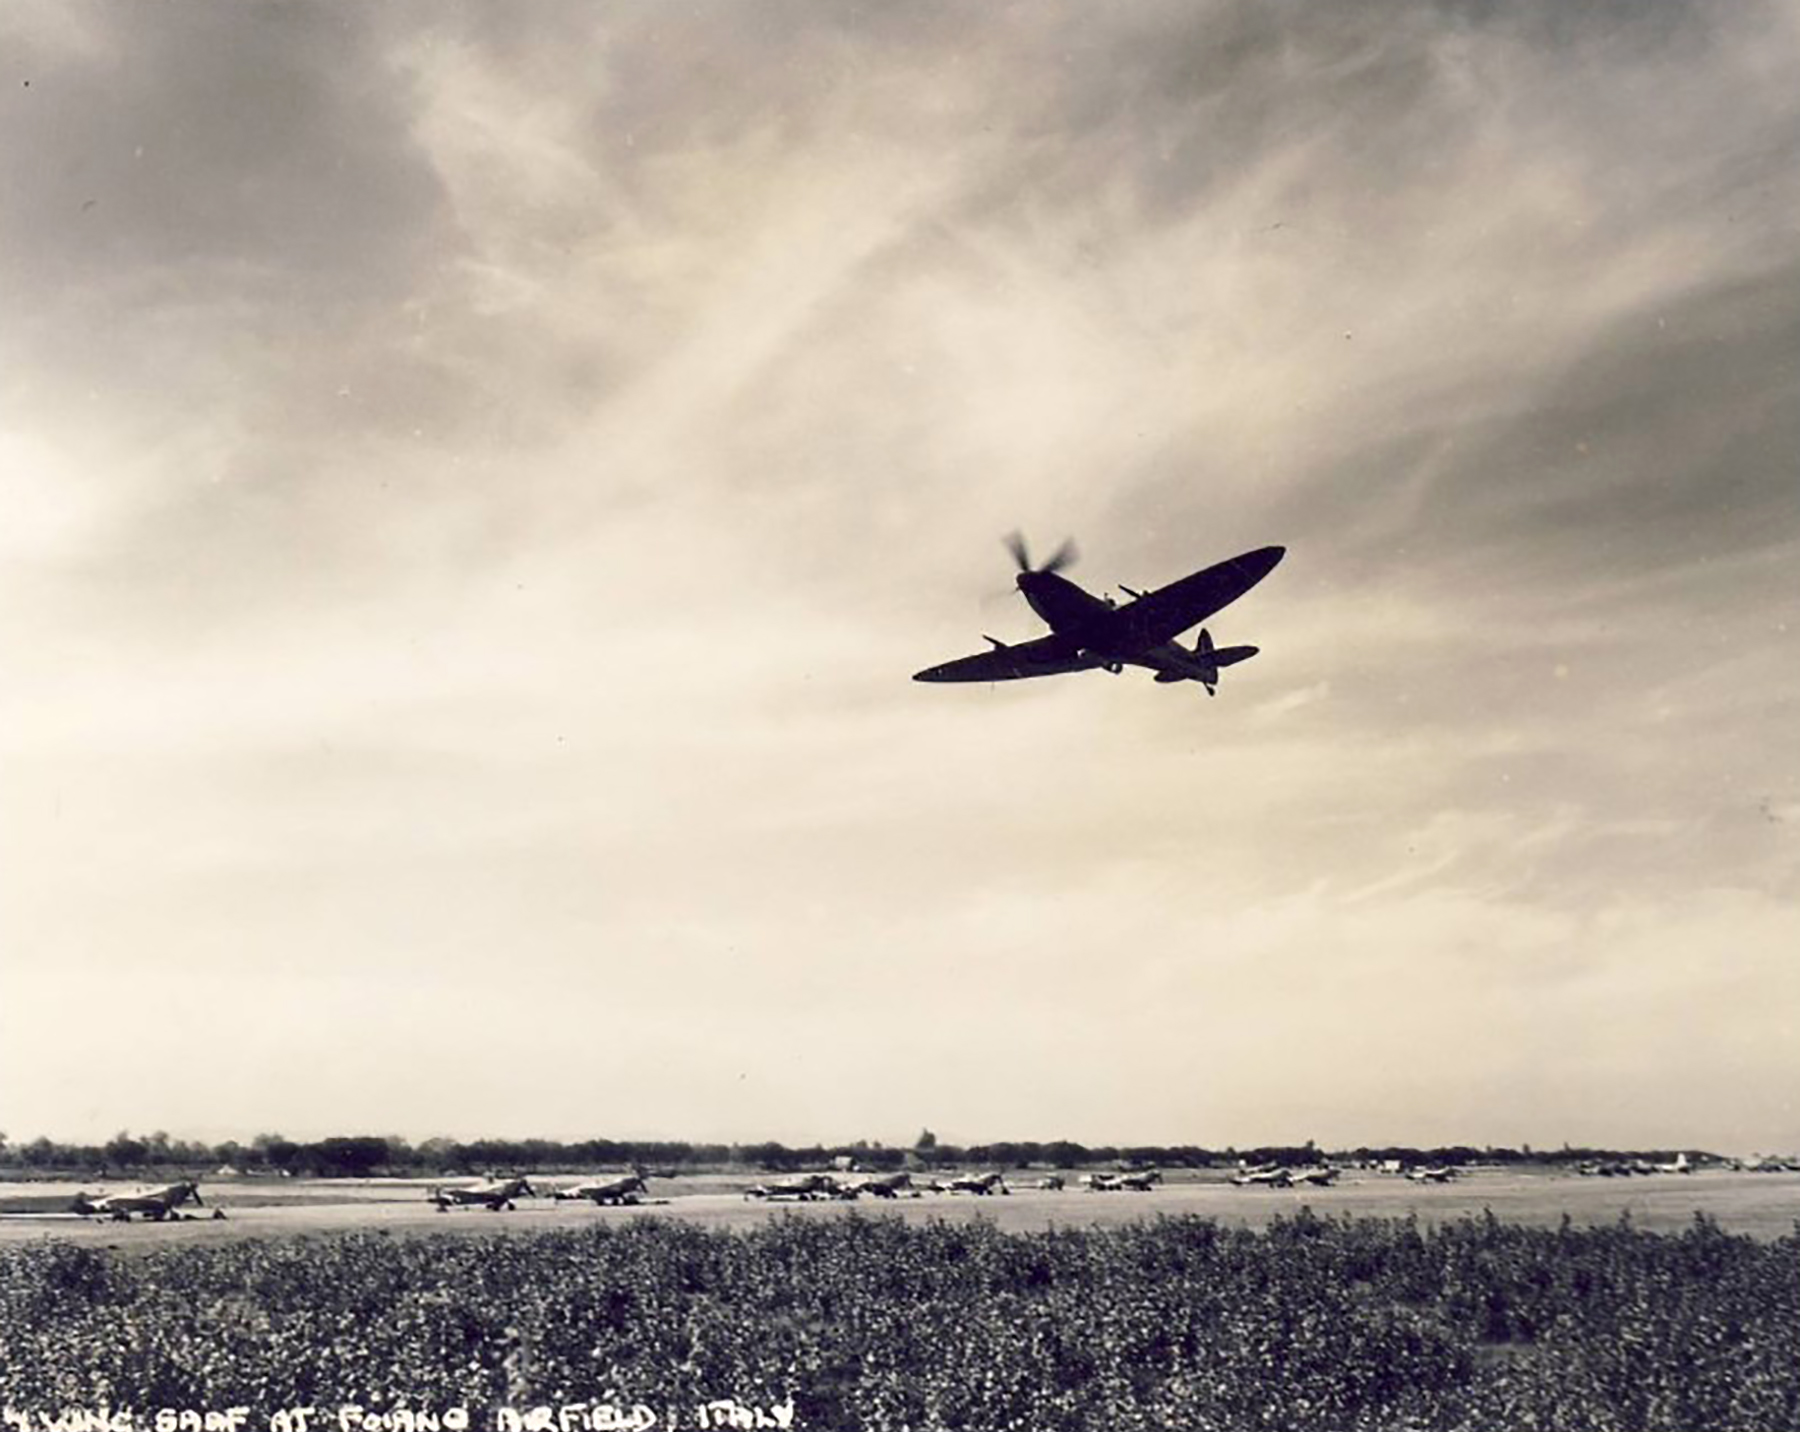 Spitfire MkVII c wing taking off at a base in Italy 01